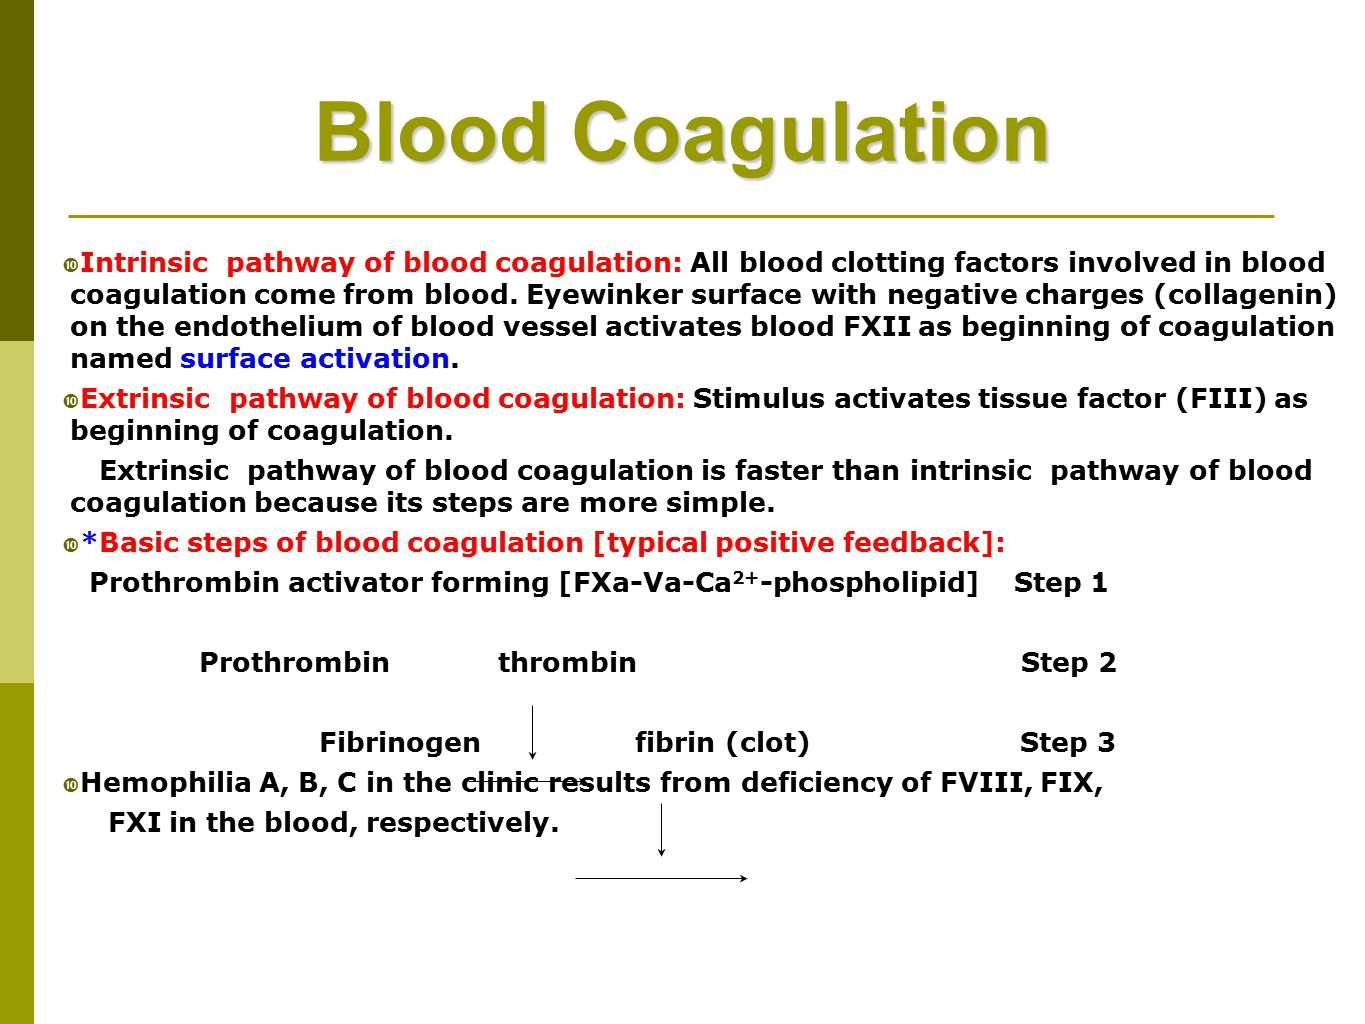 factors involved in blood coagulation